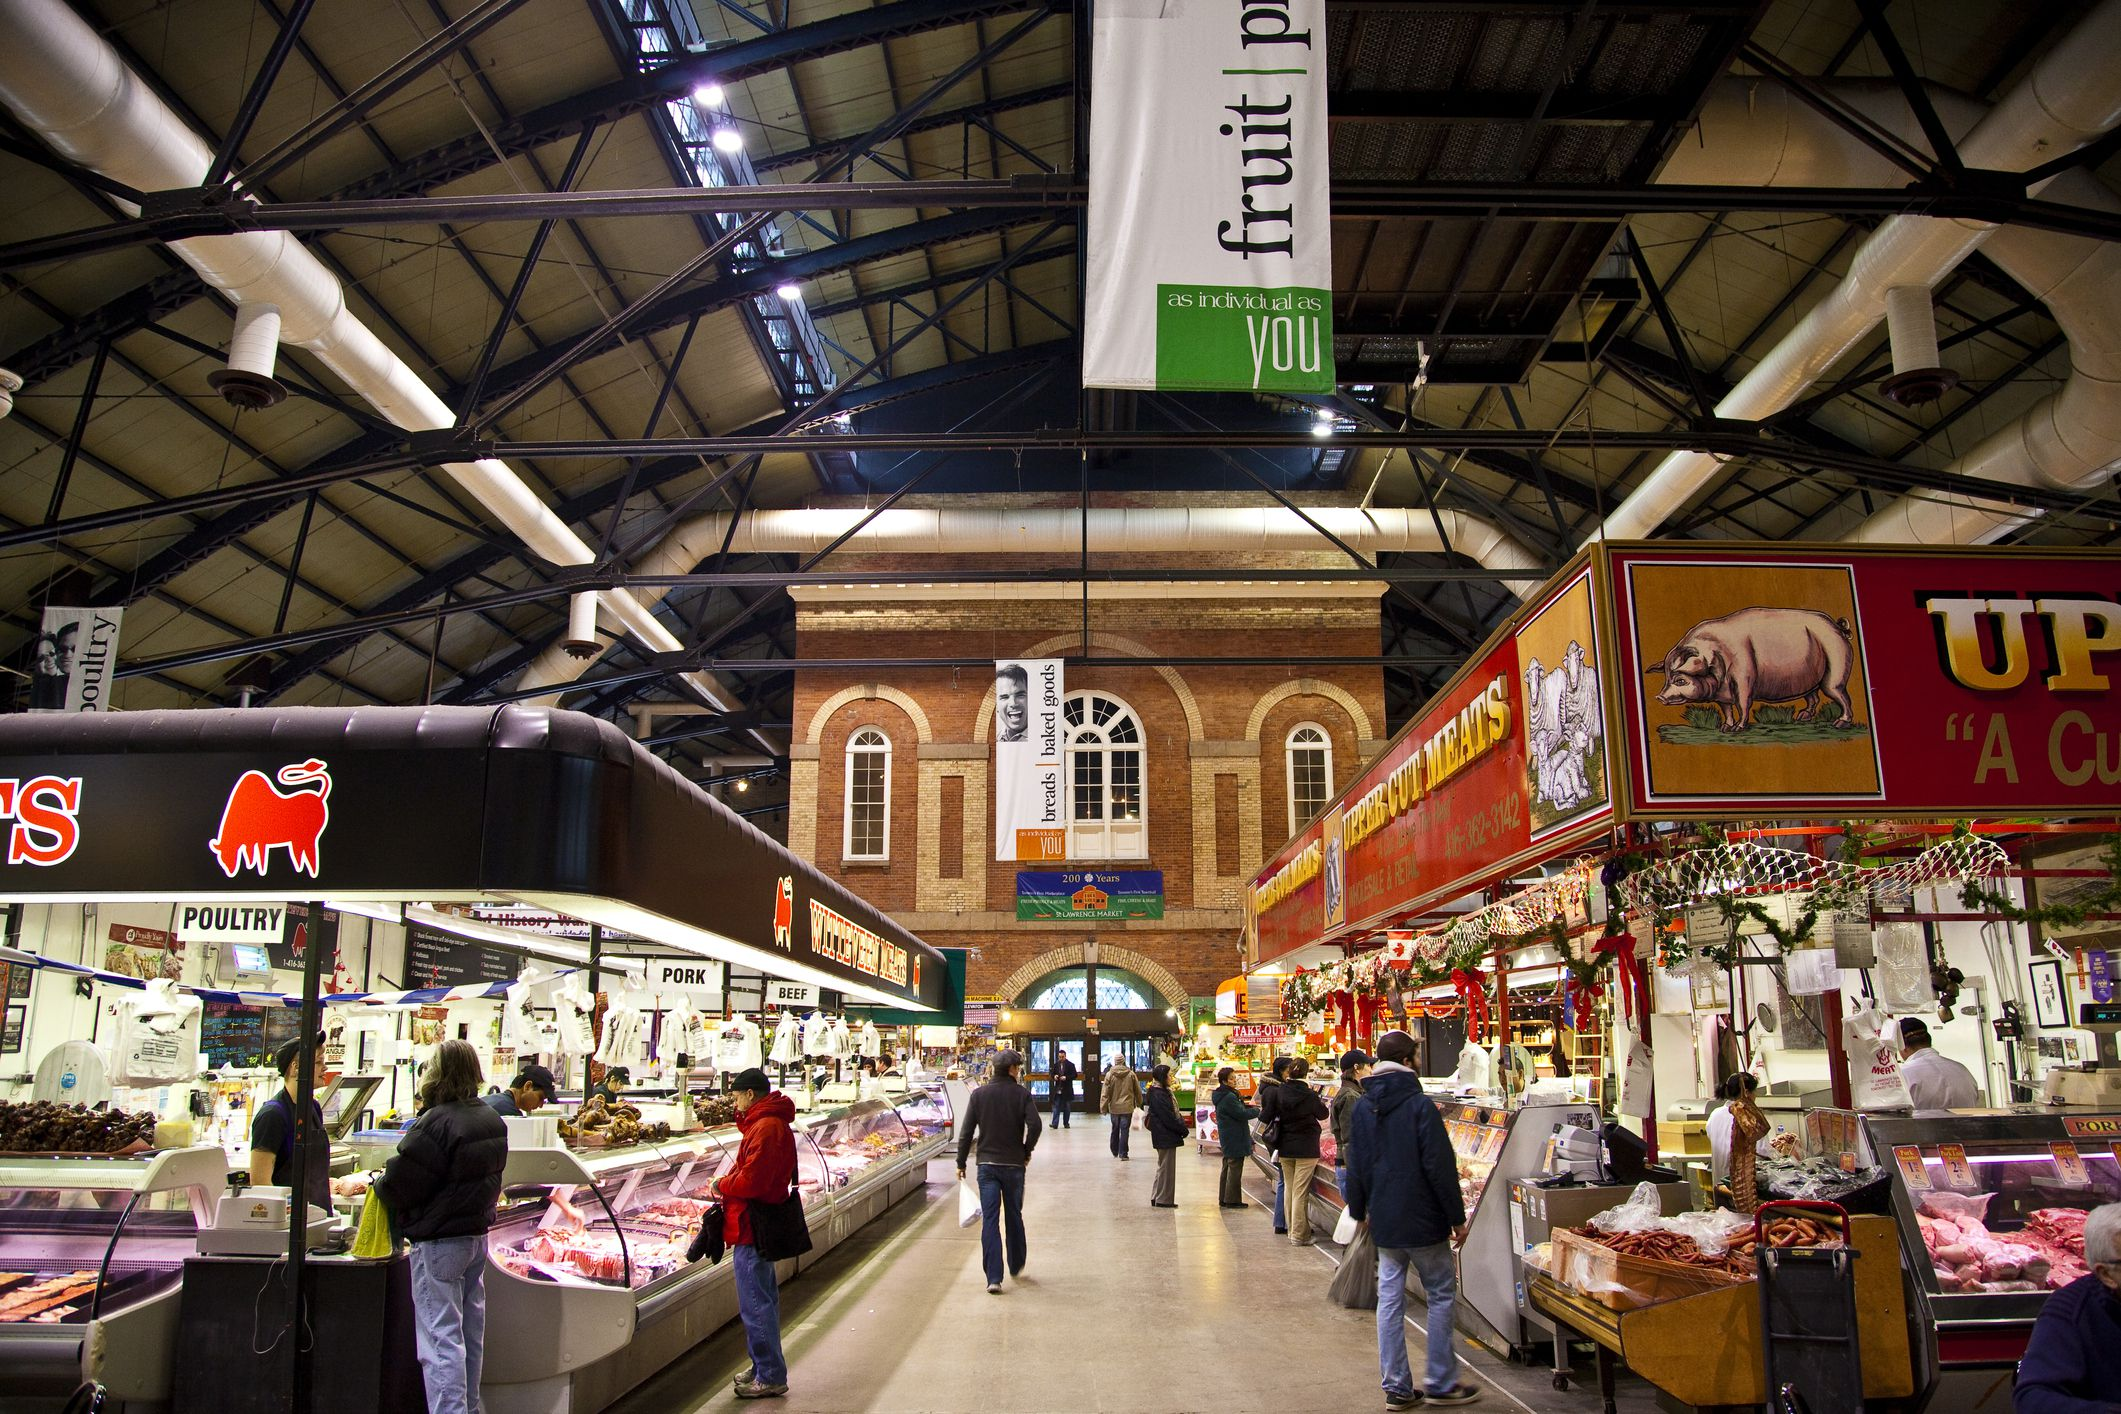 Toronto's St. Lawrence Market: The Complete Guide